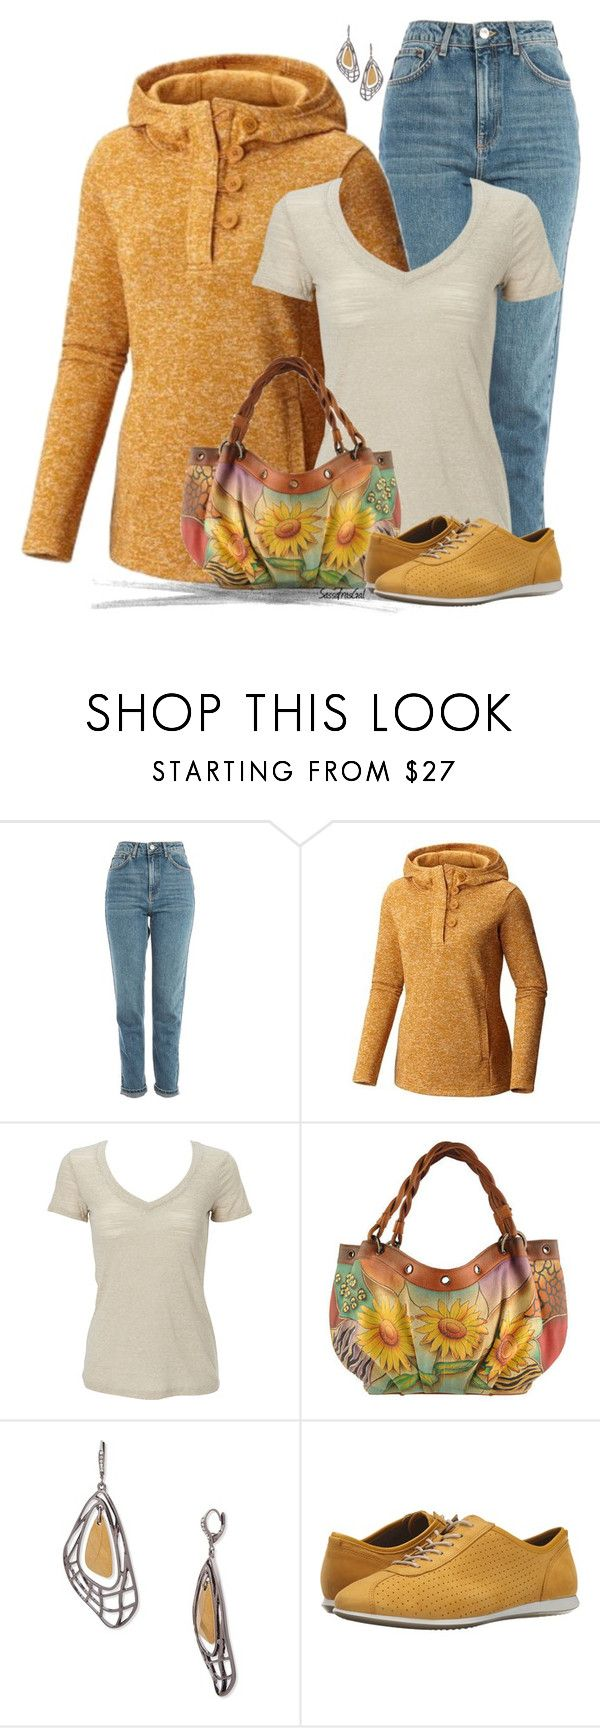 """""""Hoodie & Sneakers"""" by sassafrasgal ❤ liked on Polyvore featuring Topshop, Columbia Sportswear, Simplex Apparel, Anuschka, Jenny Packham and ECCO"""